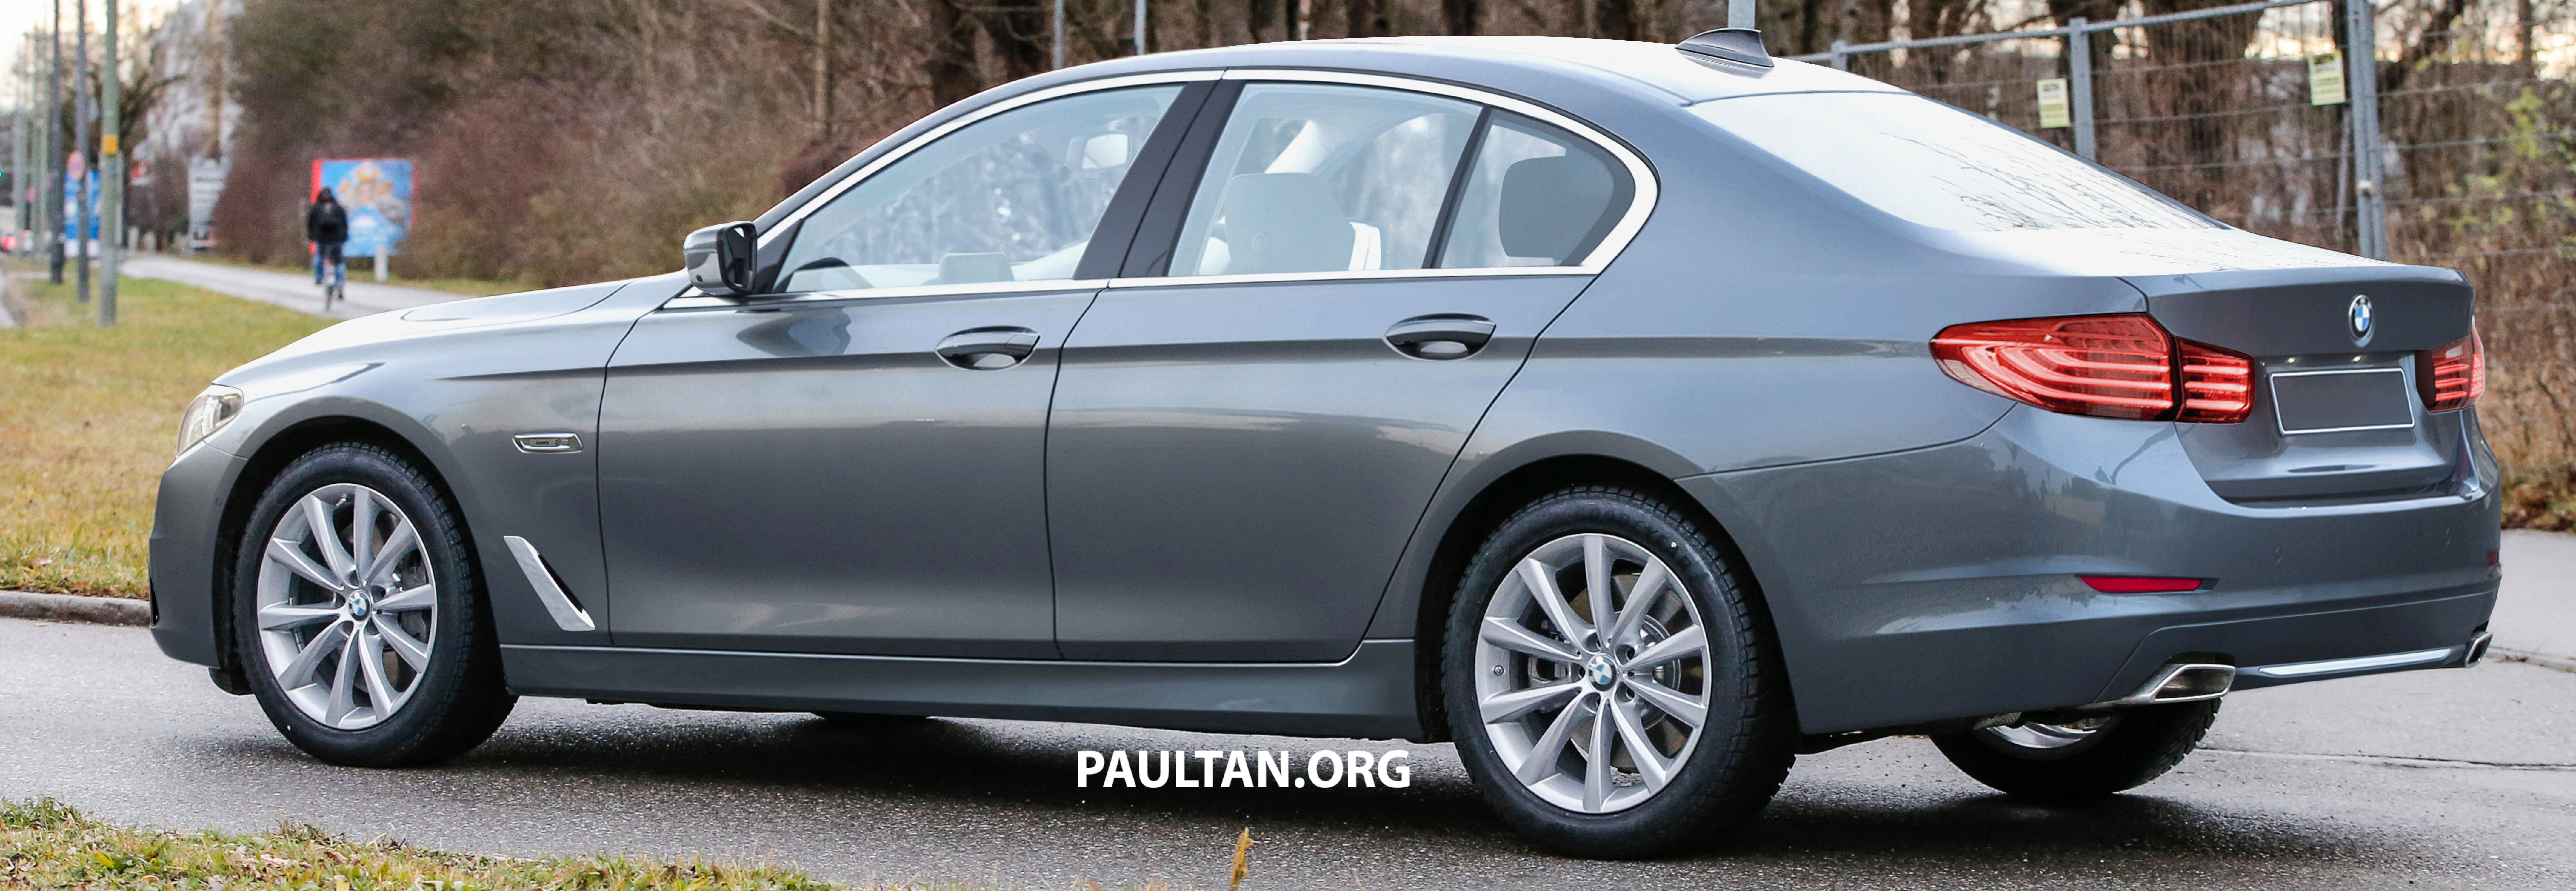 2017 Bmw 5 Series G30 Saloon Visualised Rendered Paul